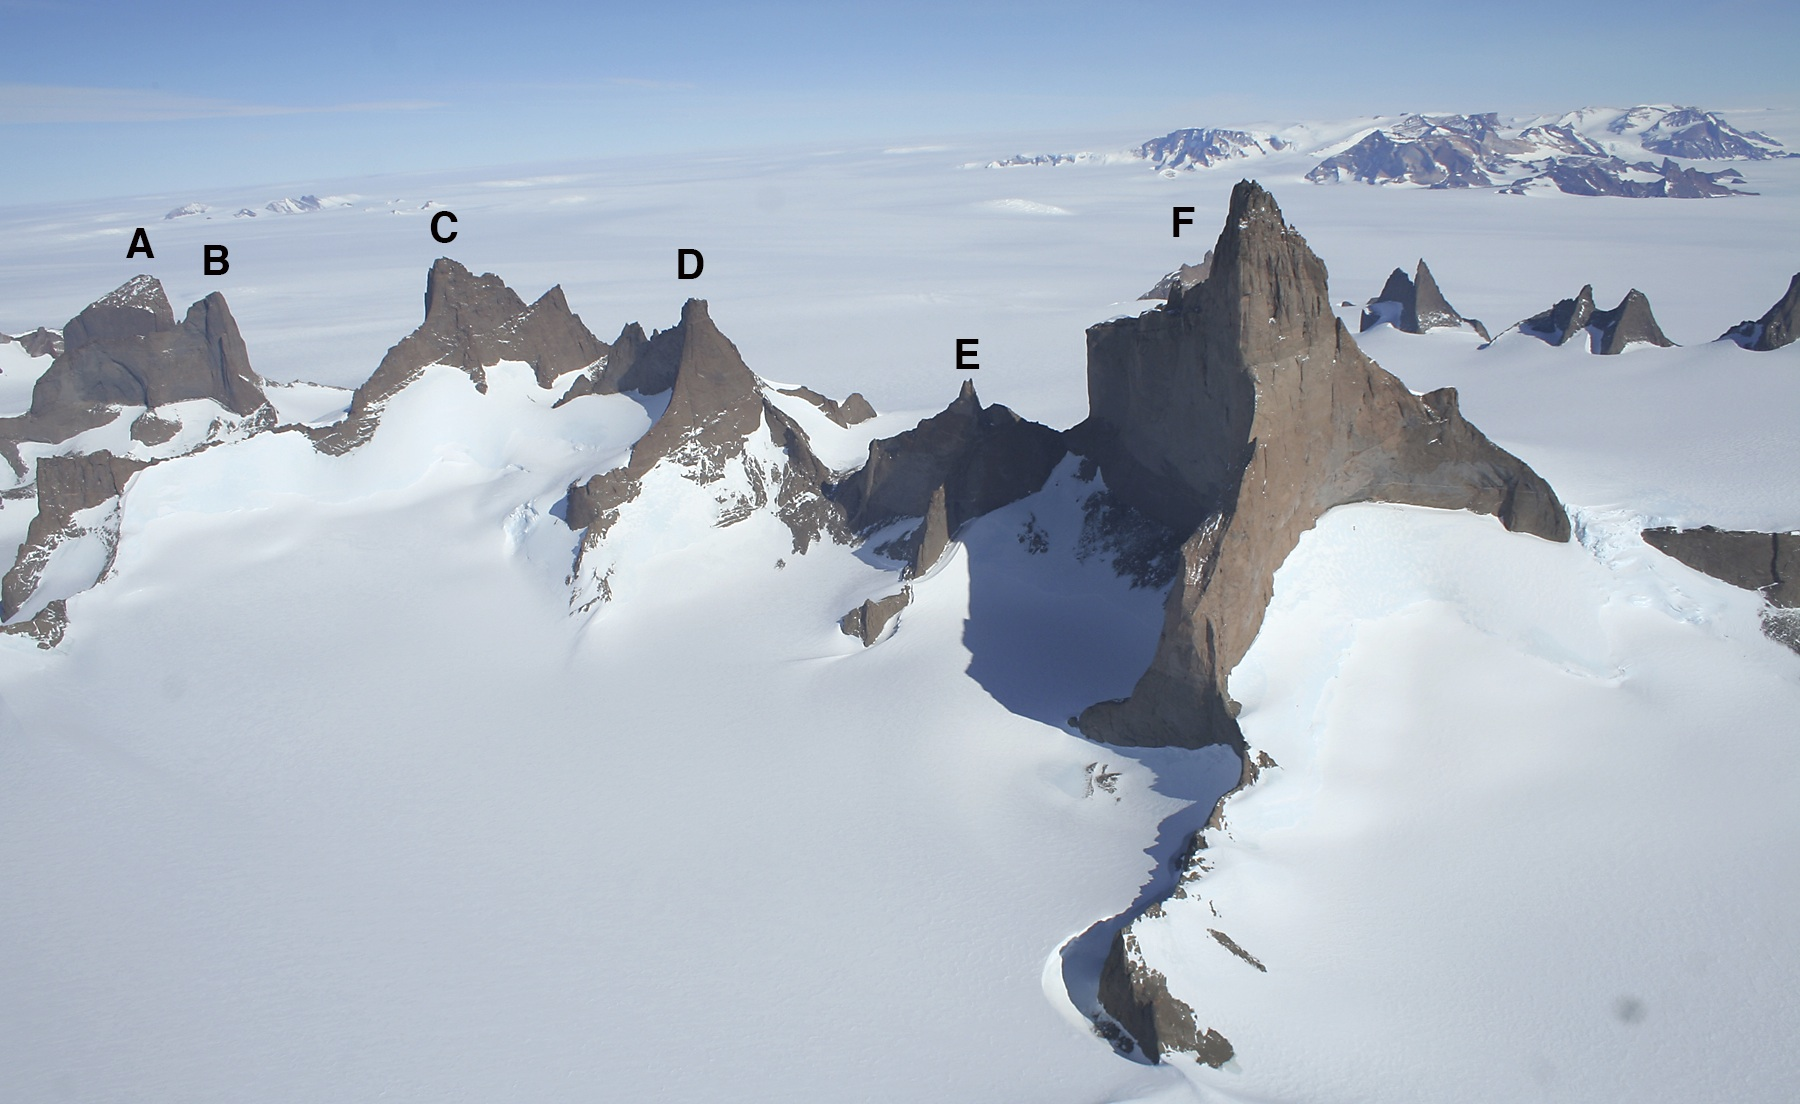 The spectacular Ulvetanna group from the northeast. (A) Holtanna (2,650m). (B) Holsttind (2,577m). (C) Kinntanna (2,724m). (D) Stetind (2,558m). (E) Hel (2,335m). (F) Ulvetanna (2,931m). The northeast ridge divides the sunlit north face from the east face. The north face is around the same height as El Capitan, while the unclimbed east face is 300m higher. Peaks of the Filchnerfjella are visible in the distance.